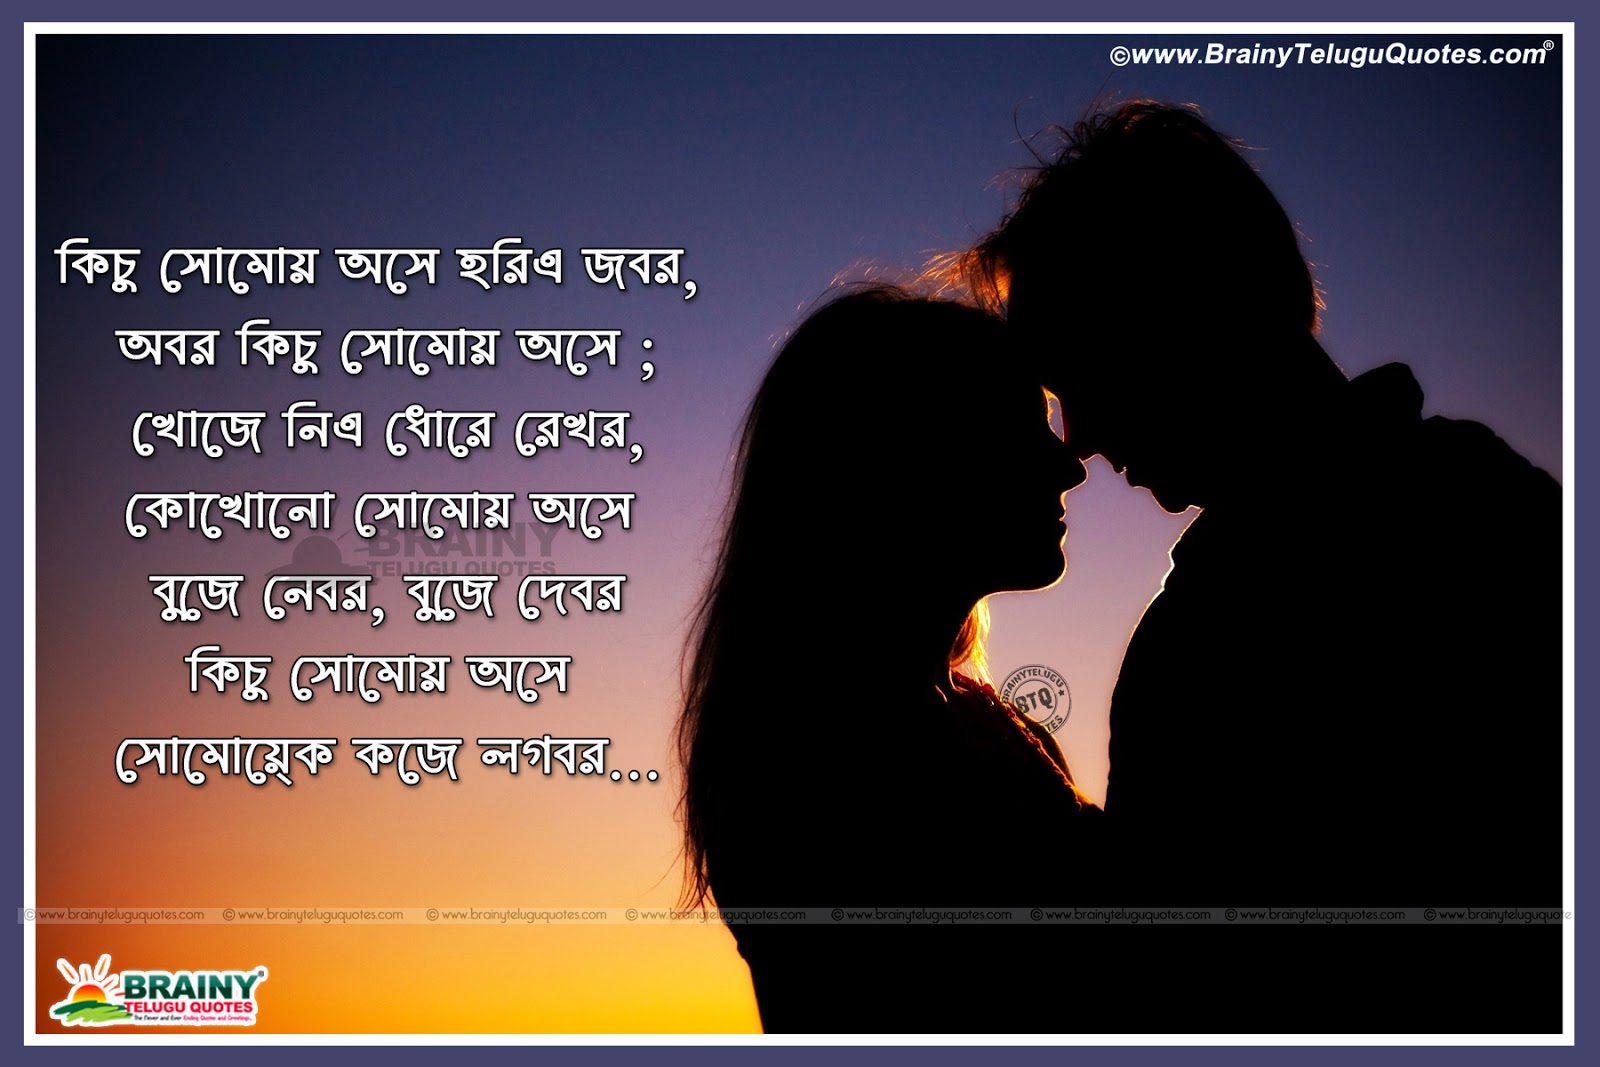 Free download Bengali Love Quotes with Cute Couple hd